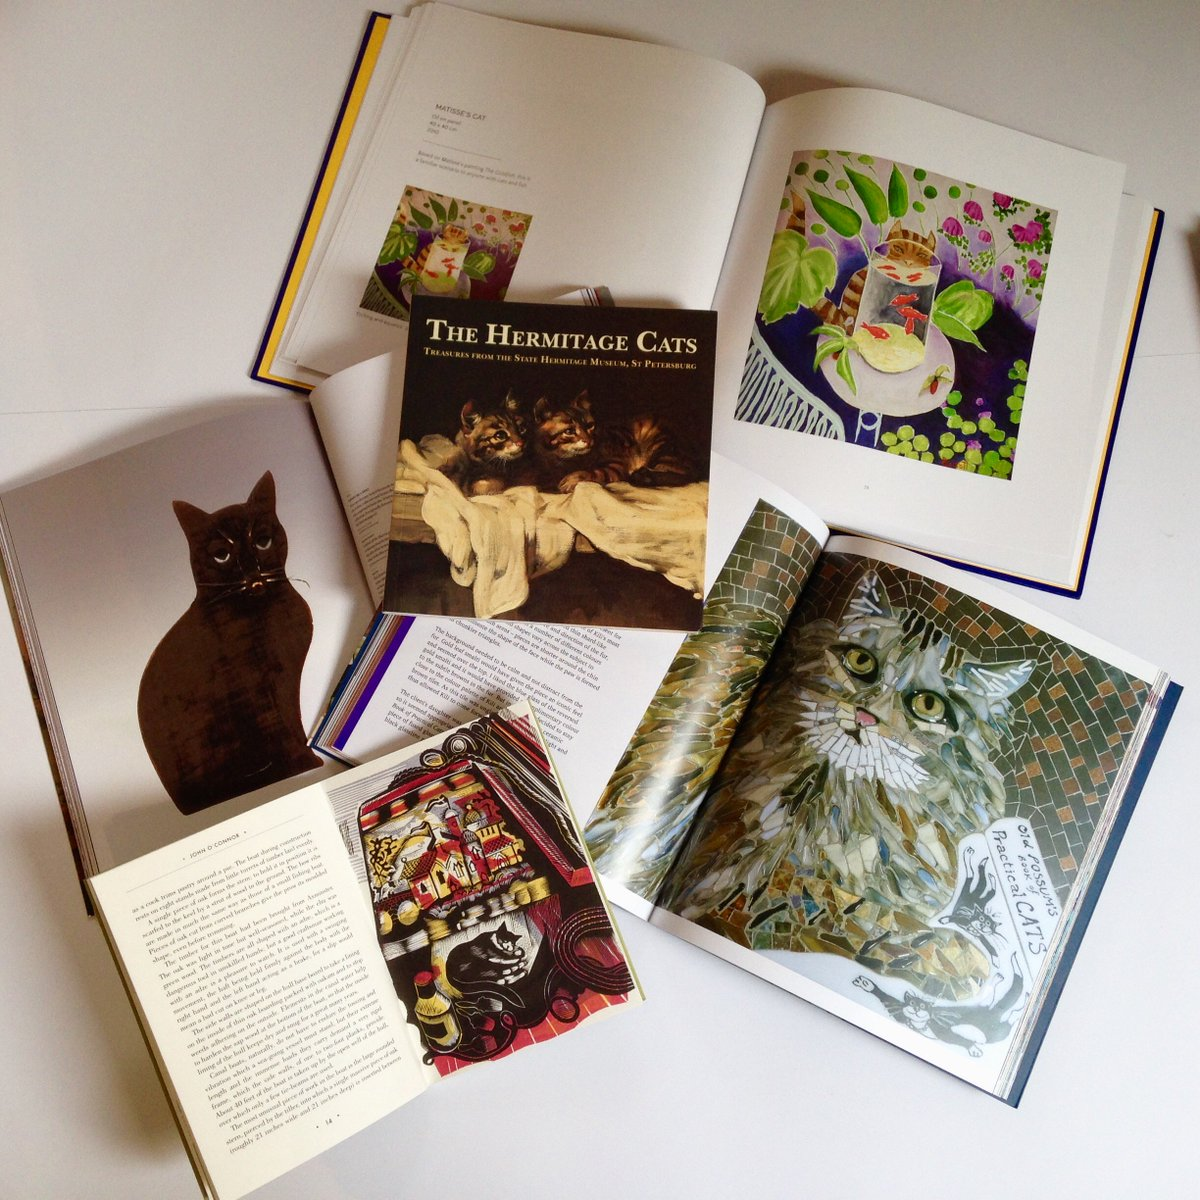 Have you seen our #CatBooks? #HermitageCats #MasterMuse #GeorgeSmart #MartinCheek #InArcadia #cats #kittens #books<br>http://pic.twitter.com/dcBXoAtT5t